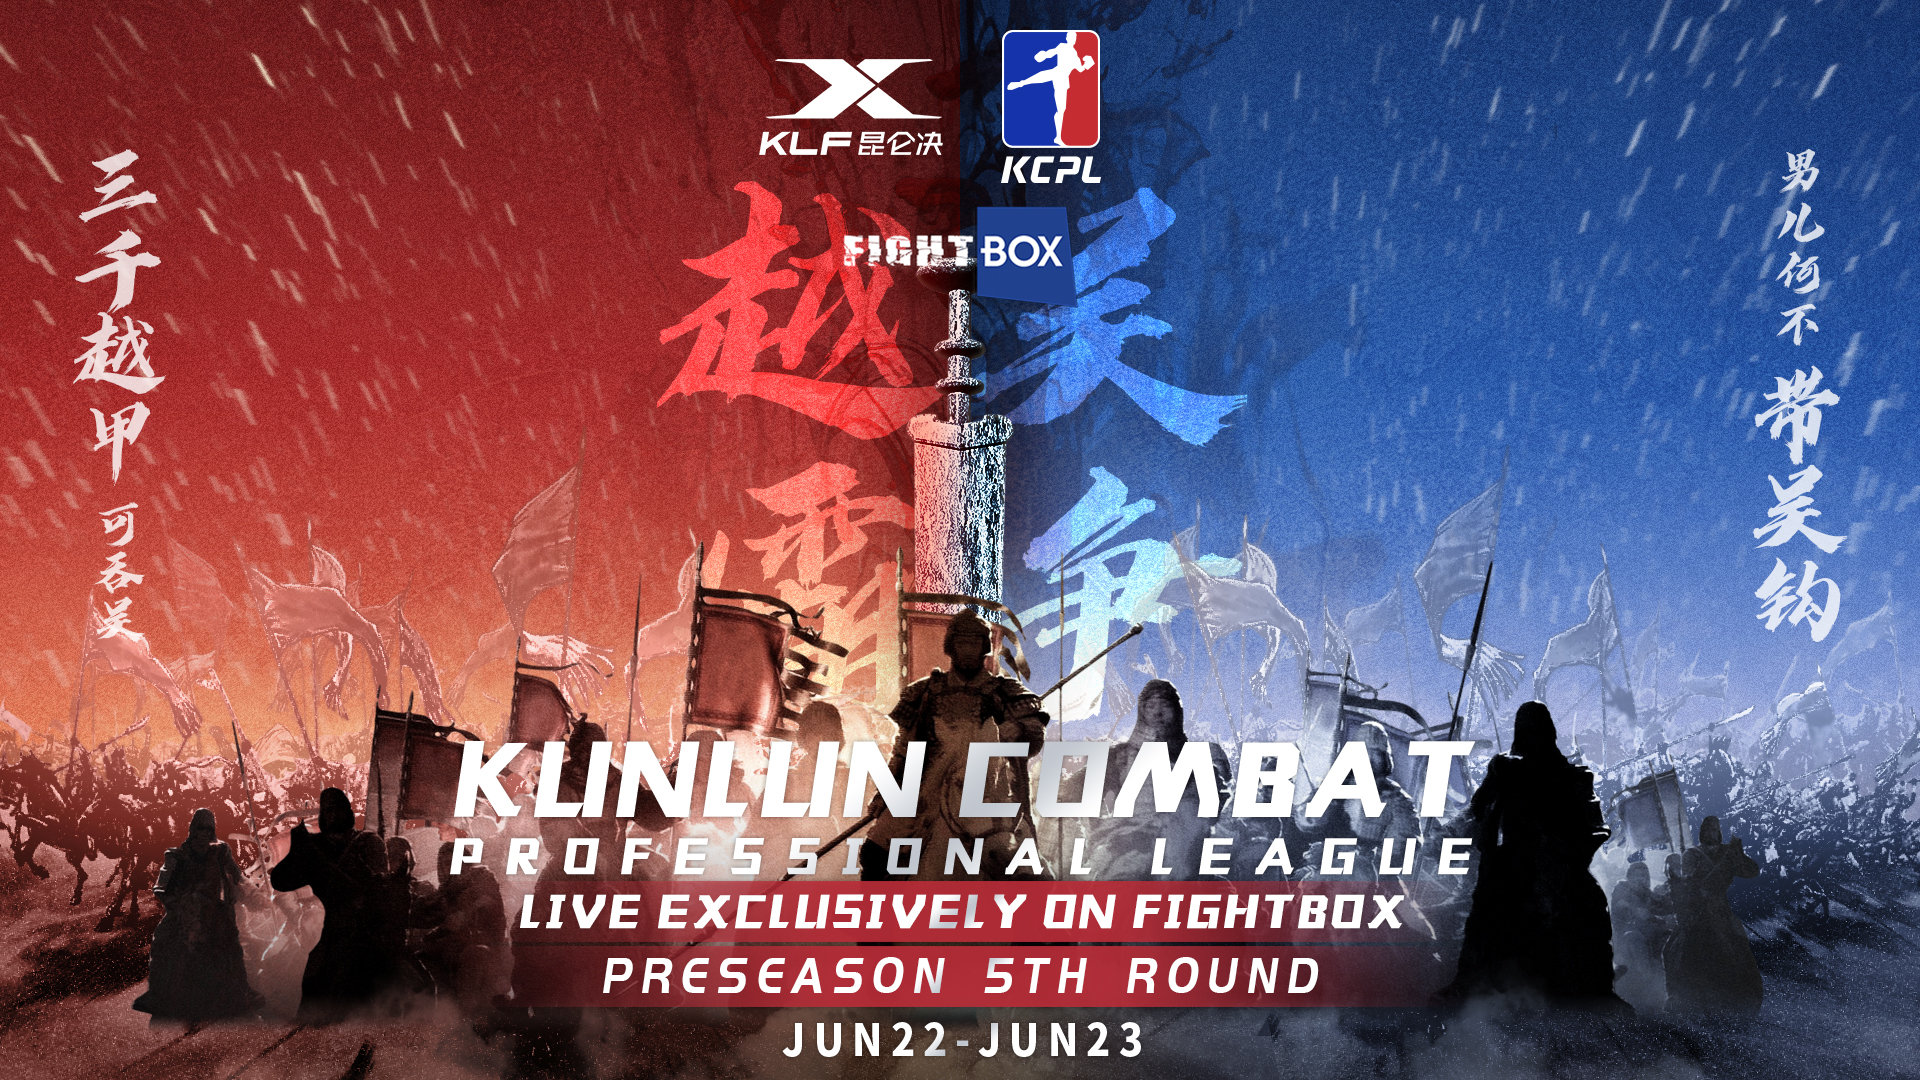 Kunlun Combat Professional League - LIVE on FightBox June 22nd, 23rd, 29th, 30th 2019